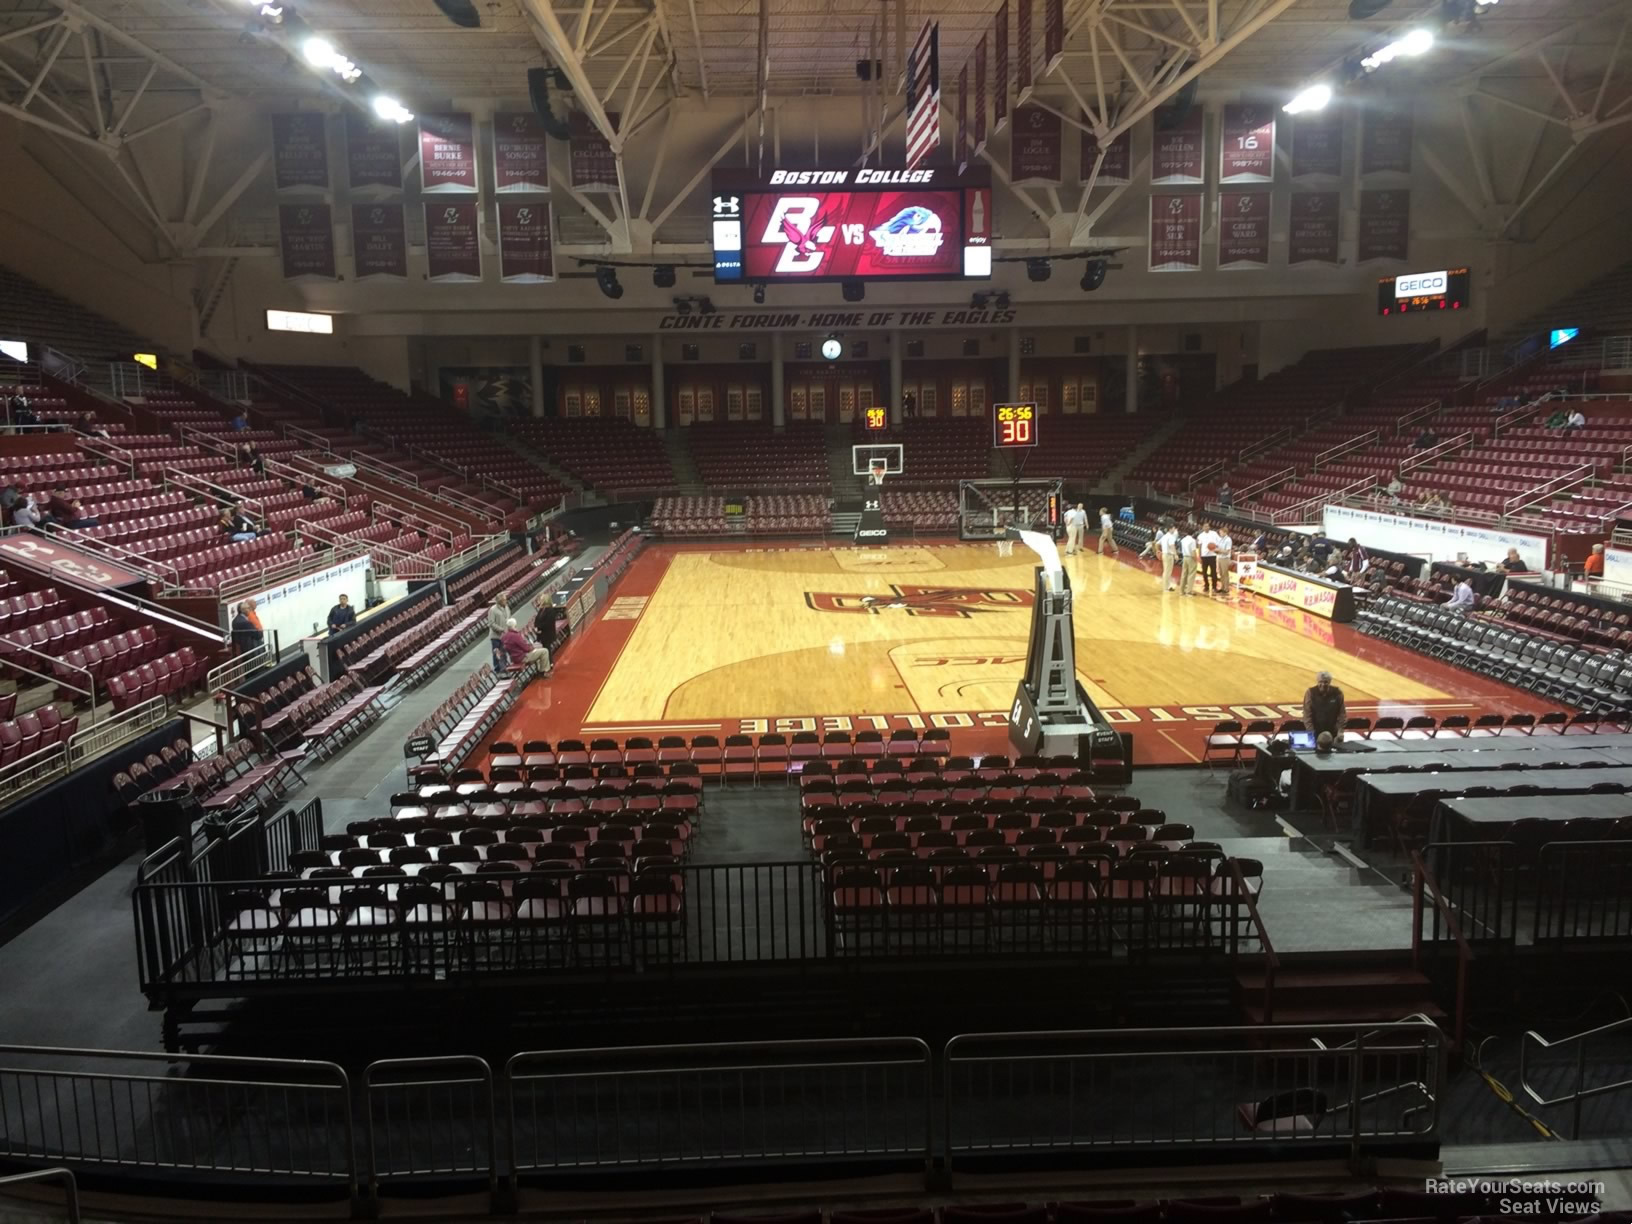 Conte Forum Section S